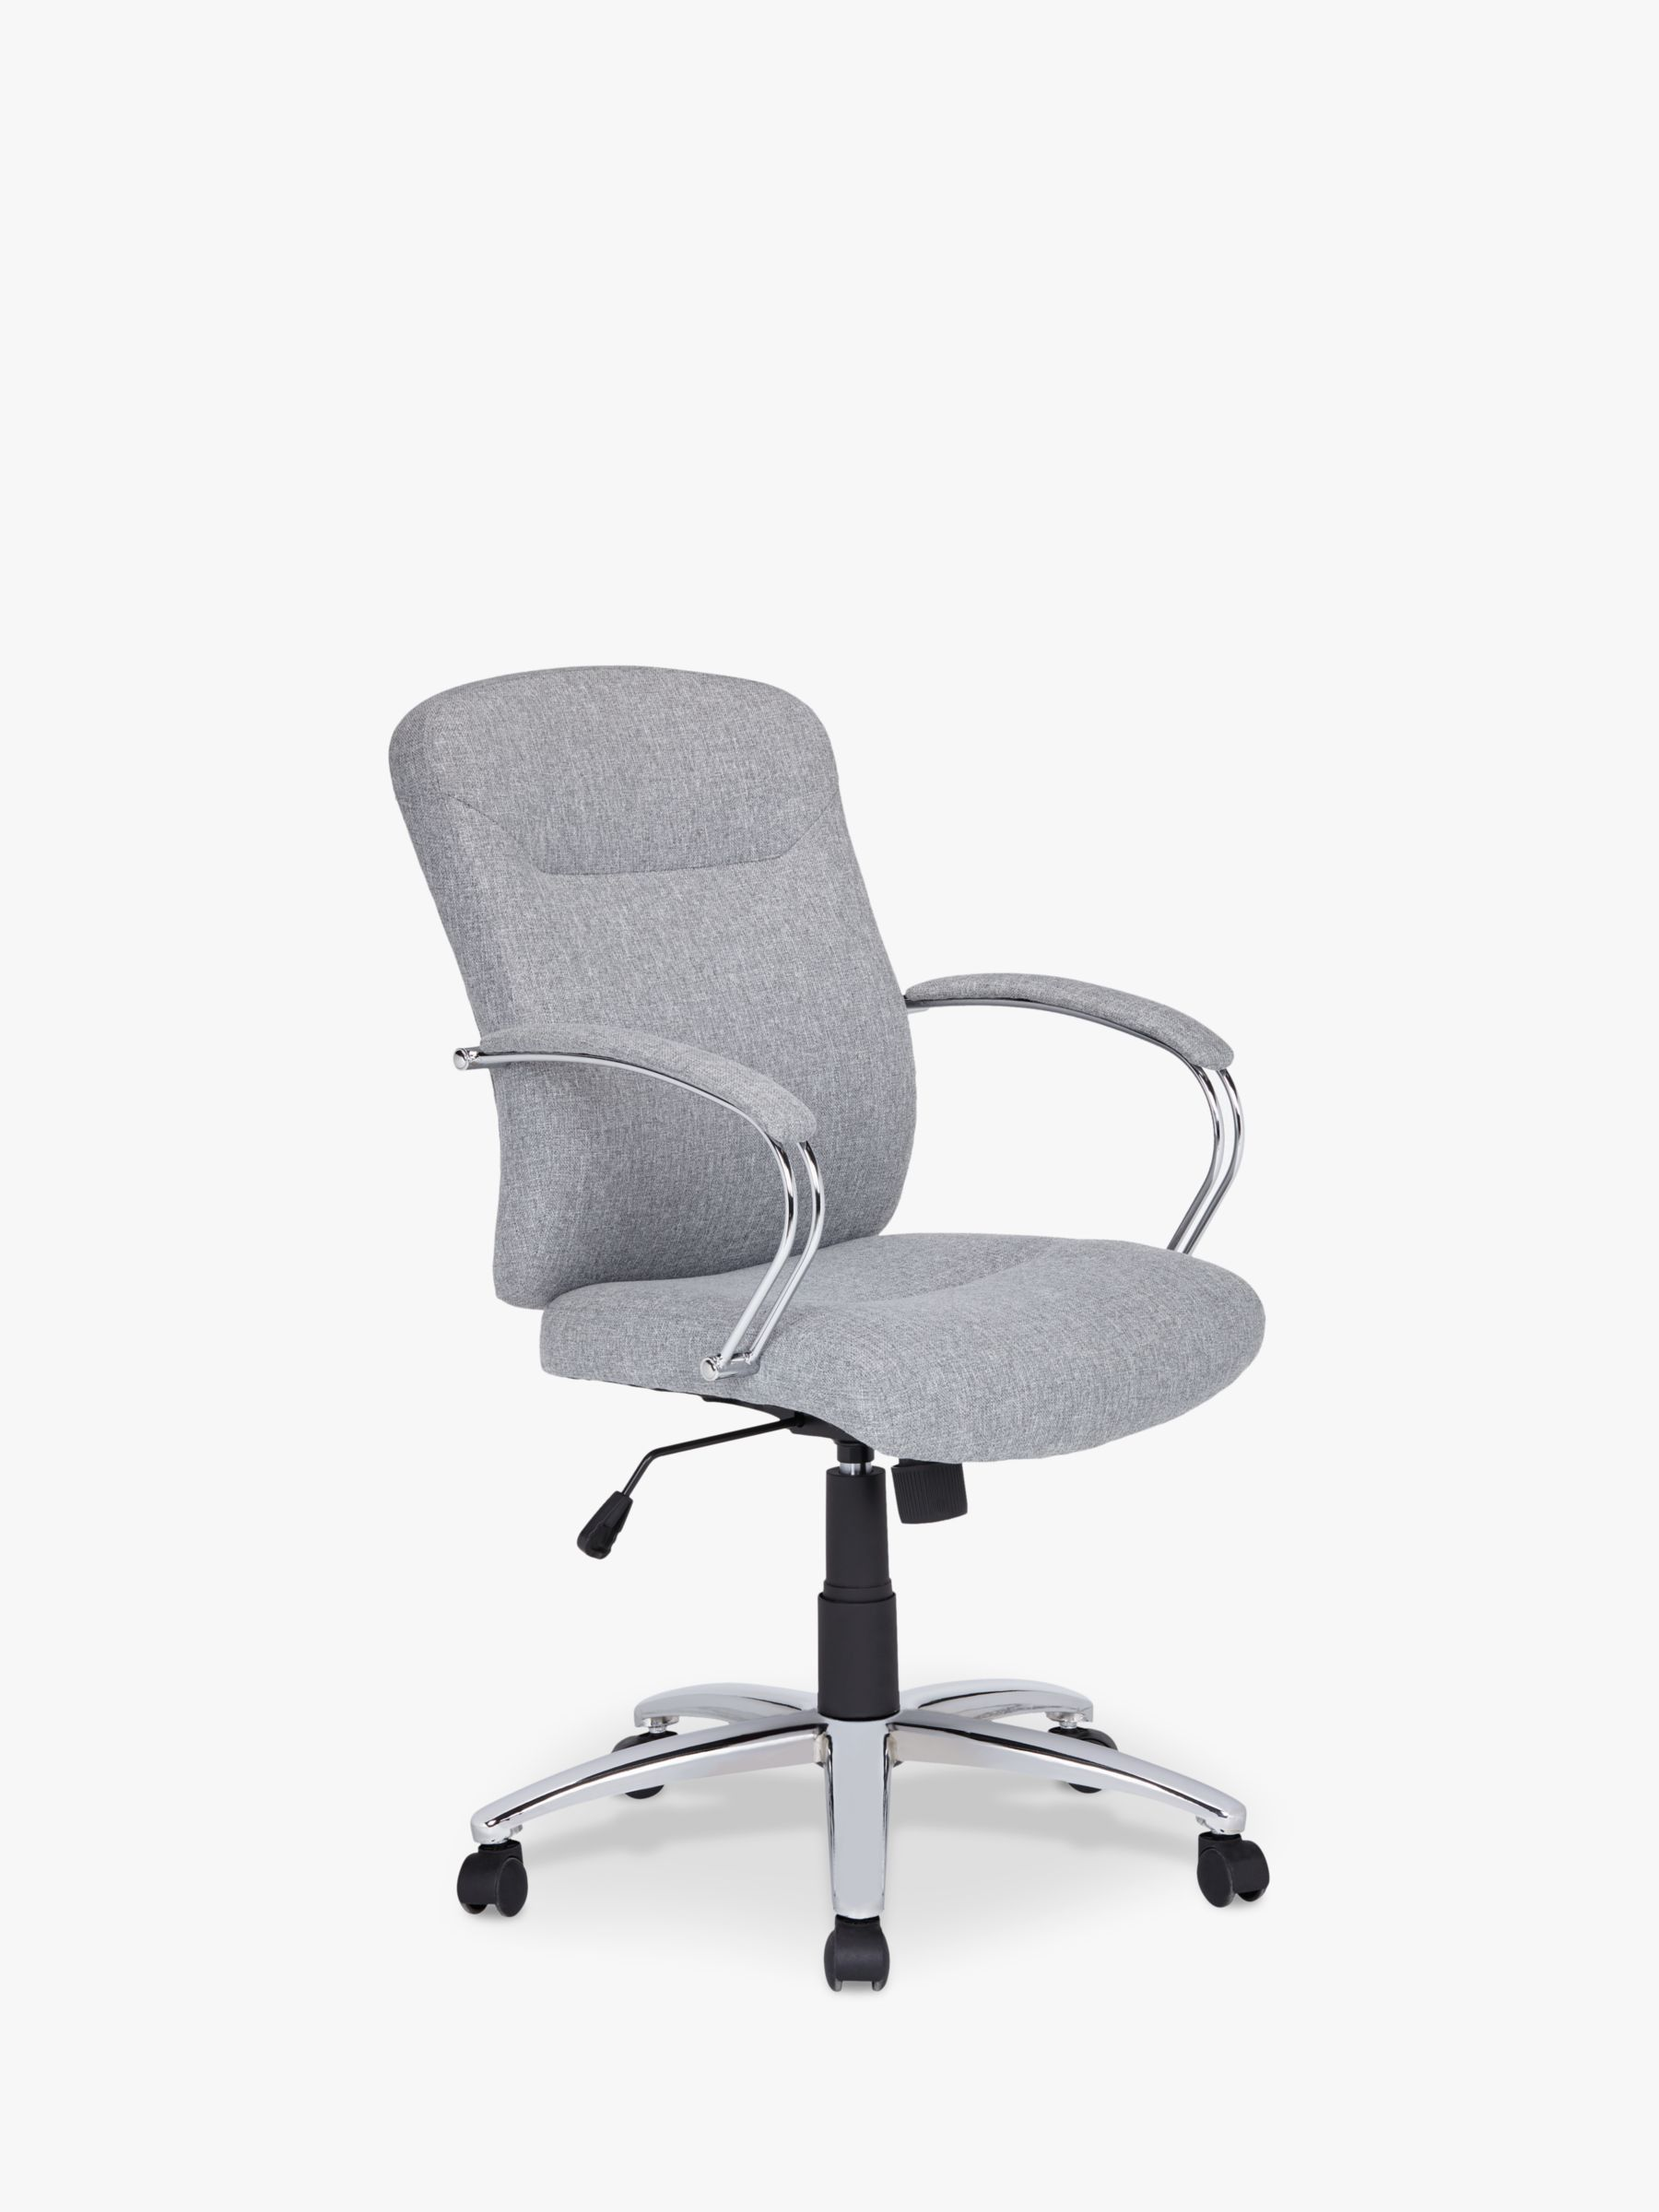 Fabric office chair with arms 2021 in 2020 office sofa